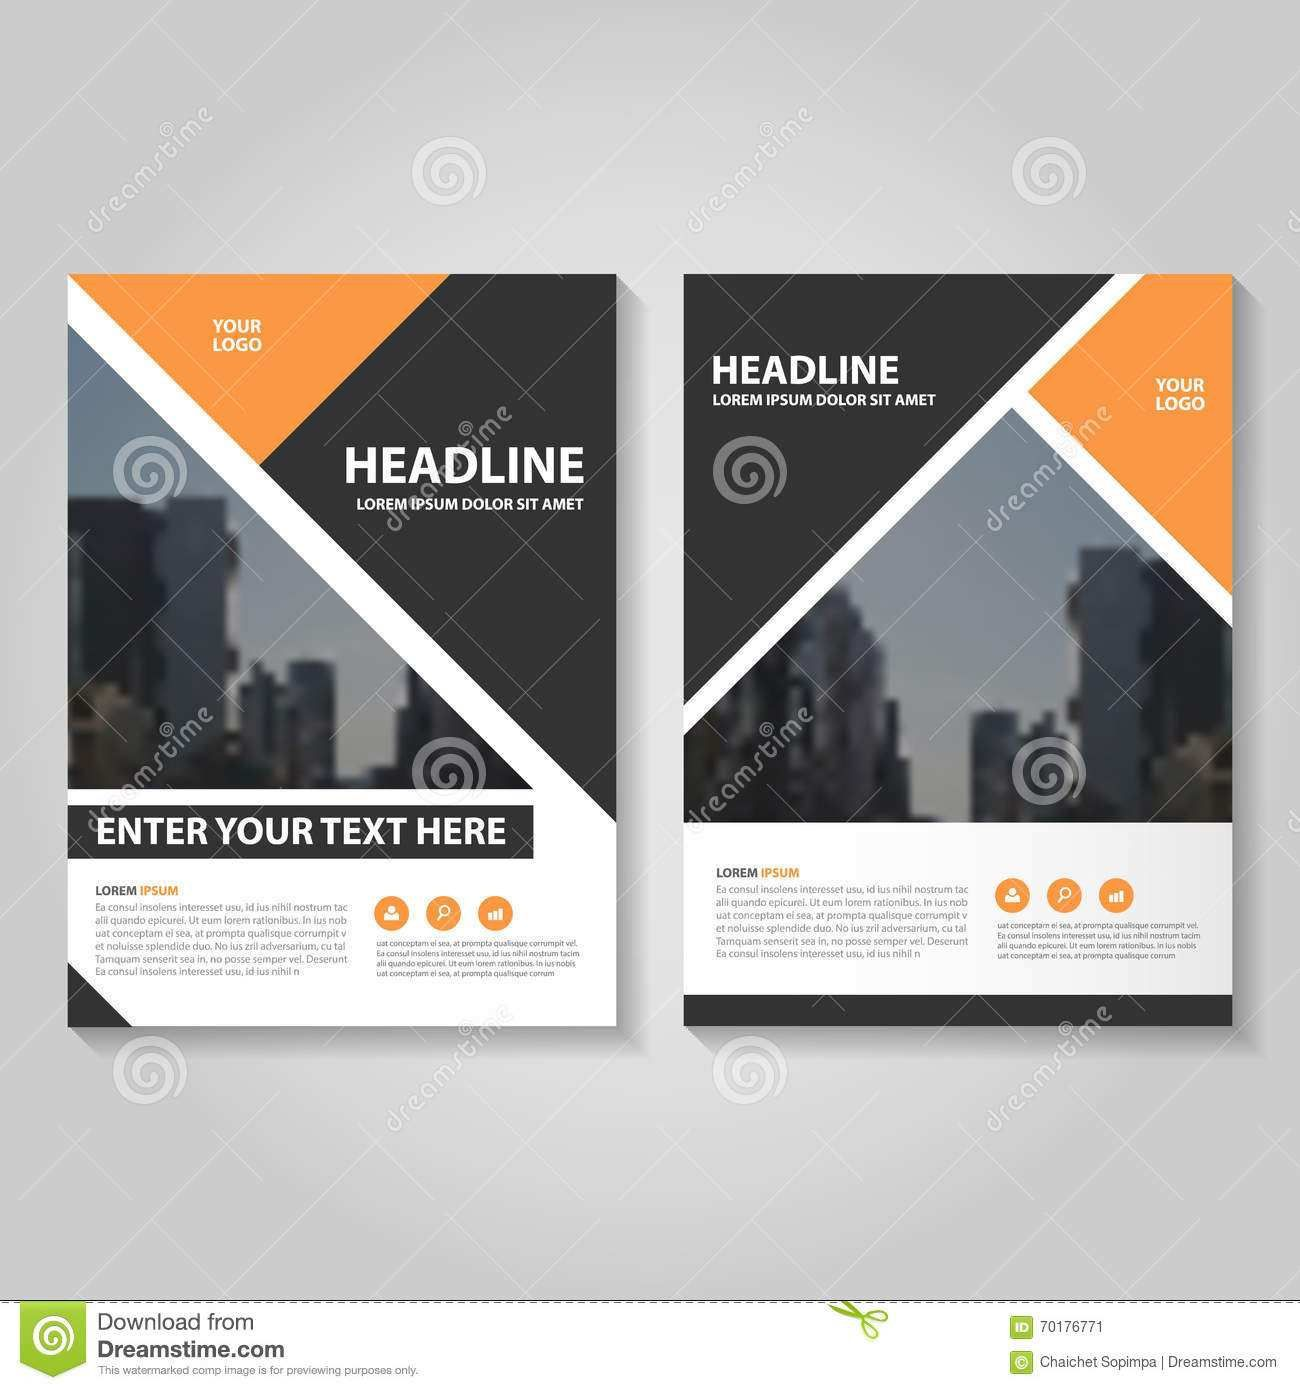 001 Excellent Brochure Template For Wordpad Image  FreeFull